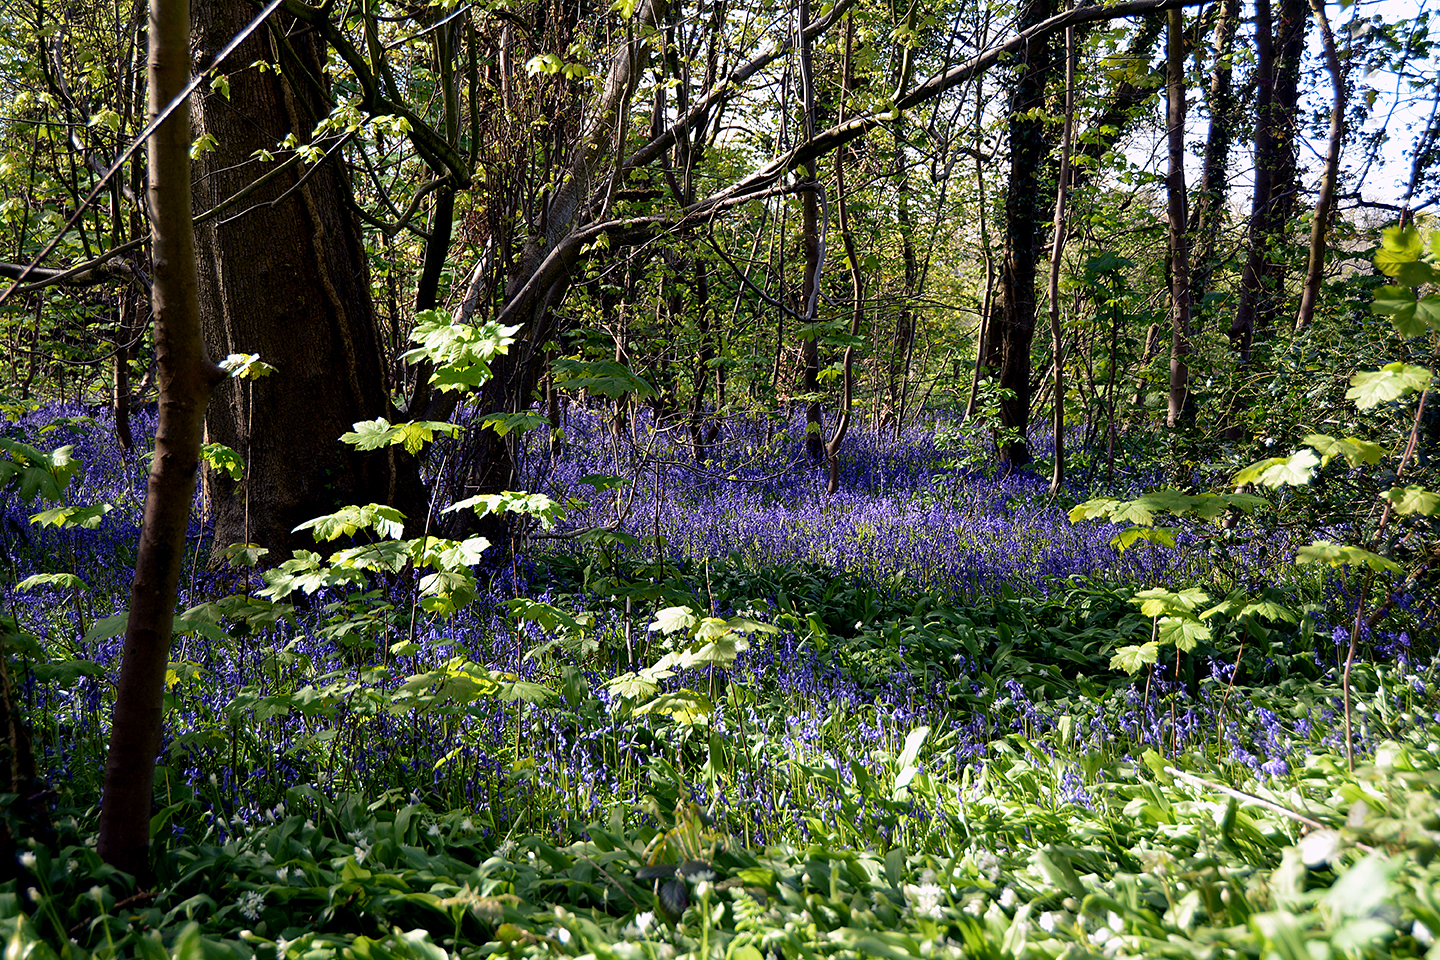 Bluebell woods in Spring